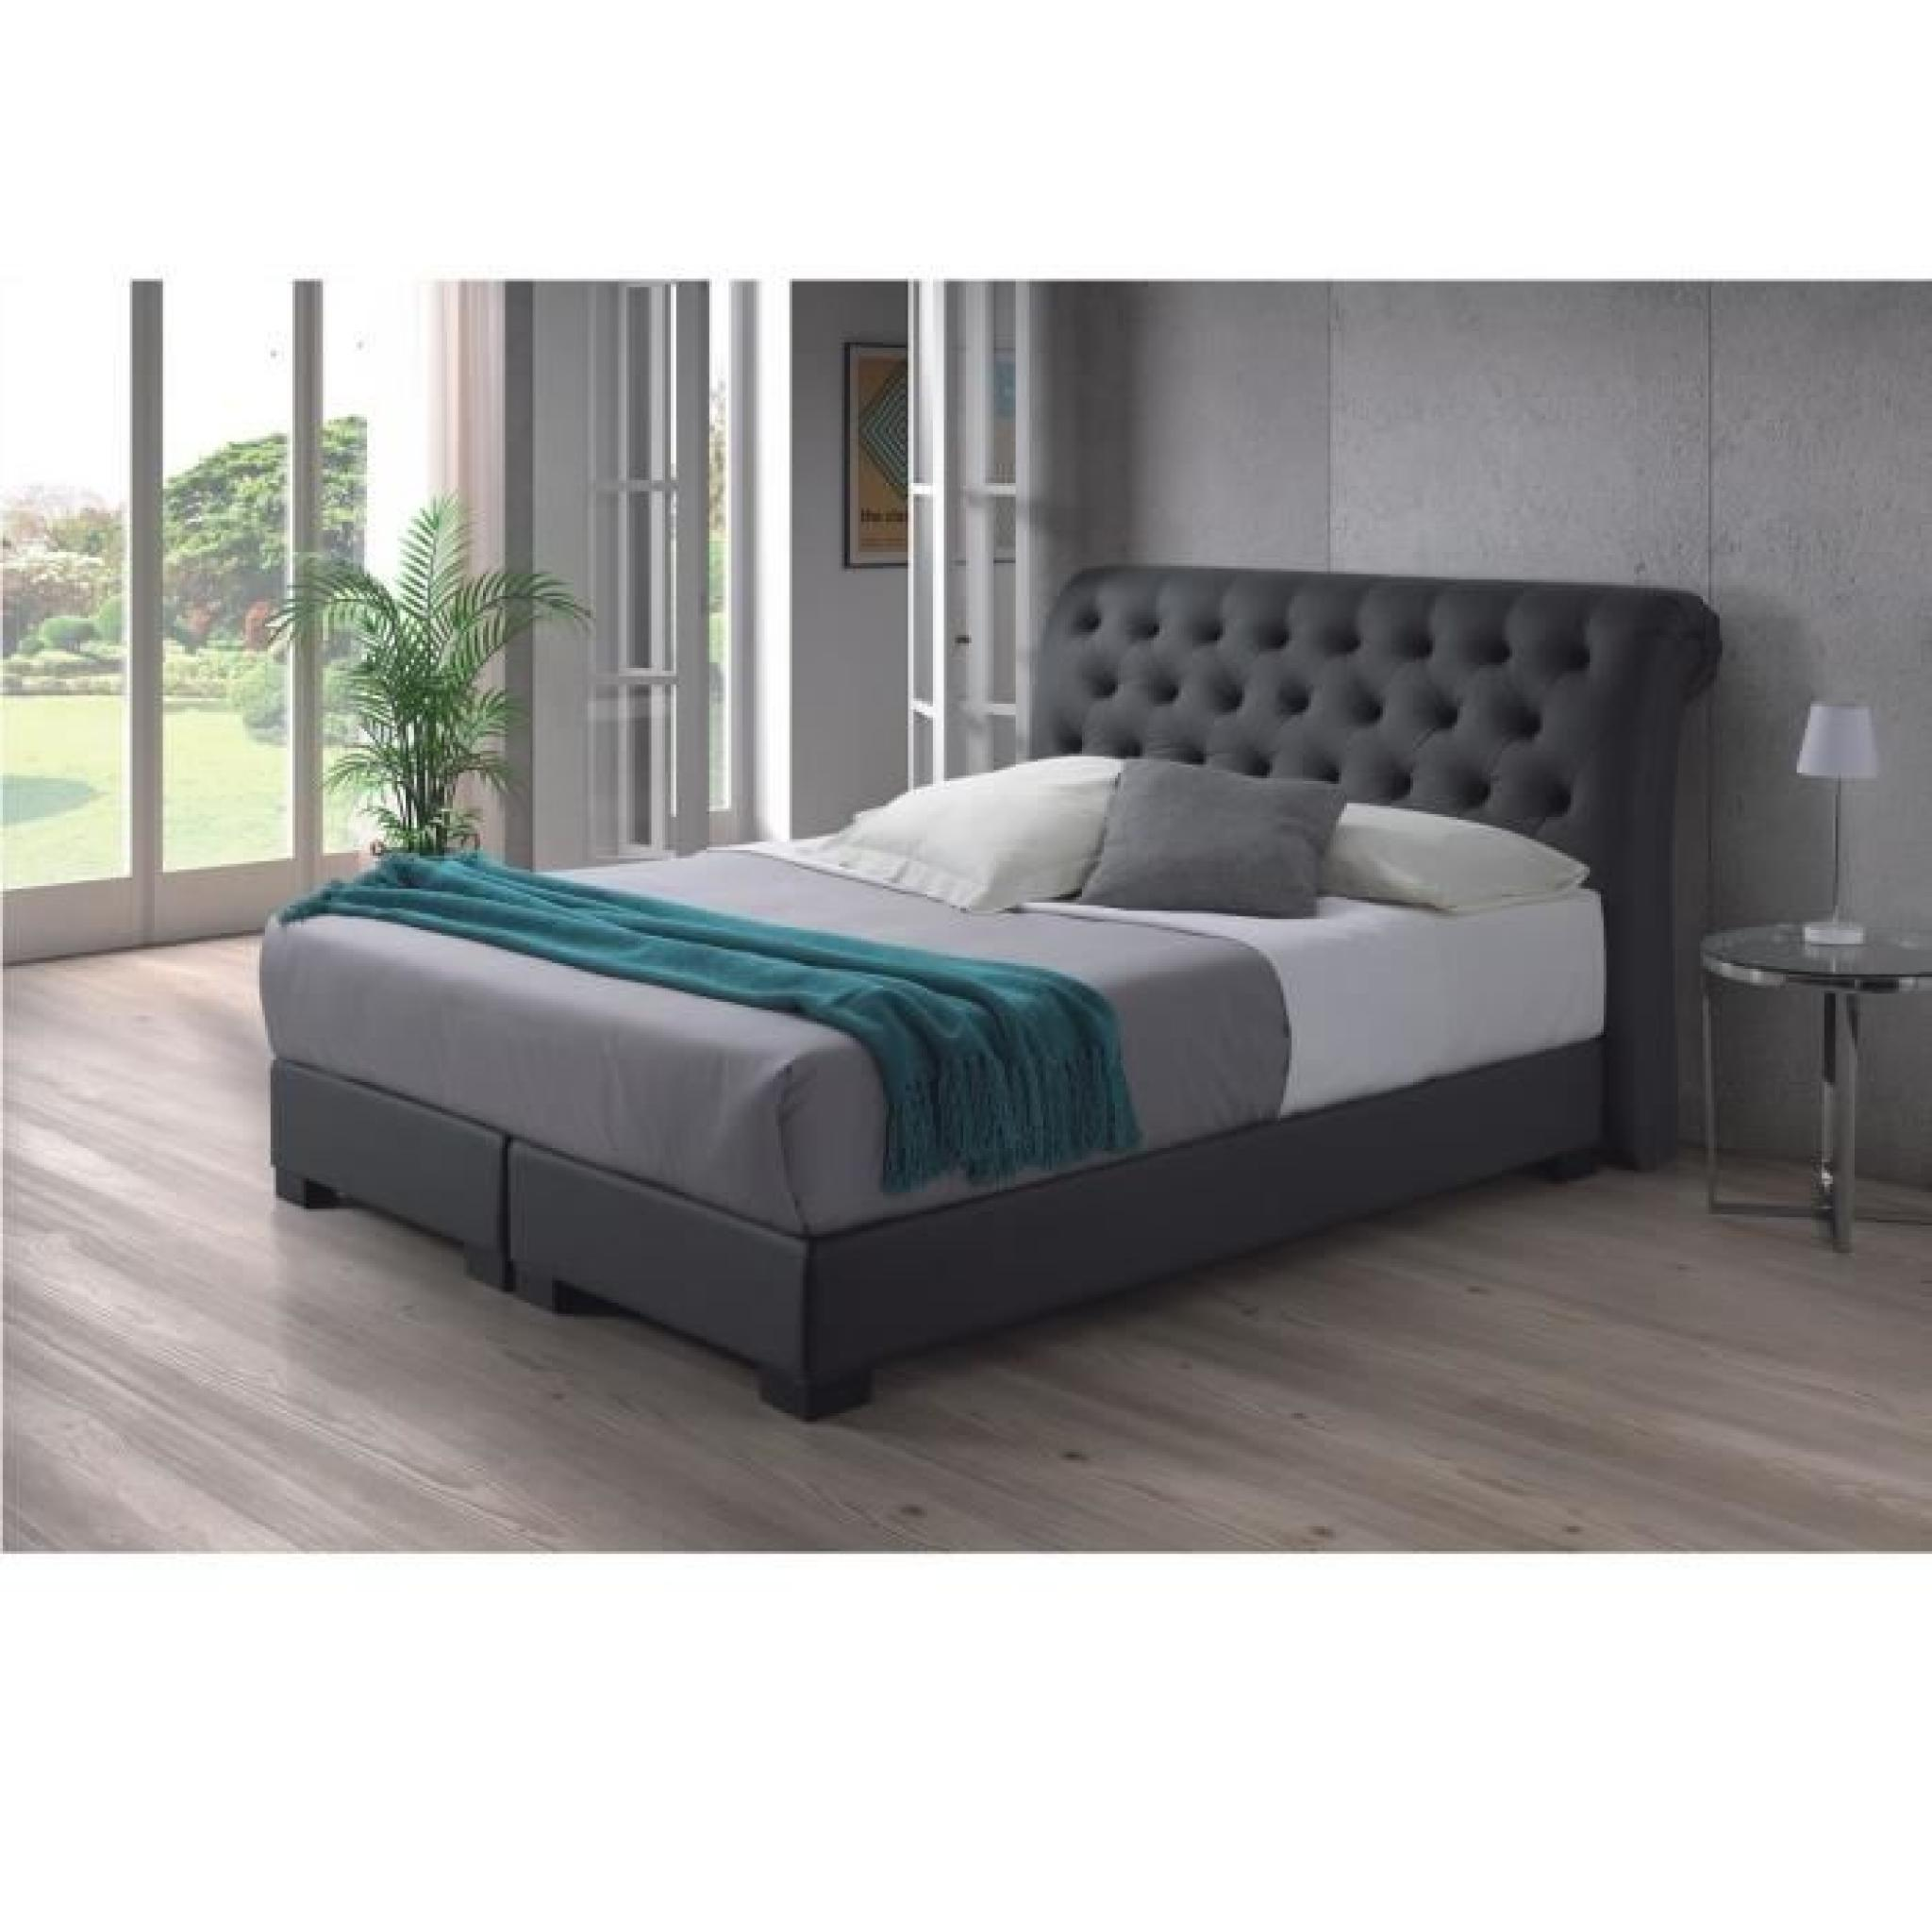 molly lit adulte 180x200 cm boxspring avec matelas gris achat vente lit pas cher couleur. Black Bedroom Furniture Sets. Home Design Ideas